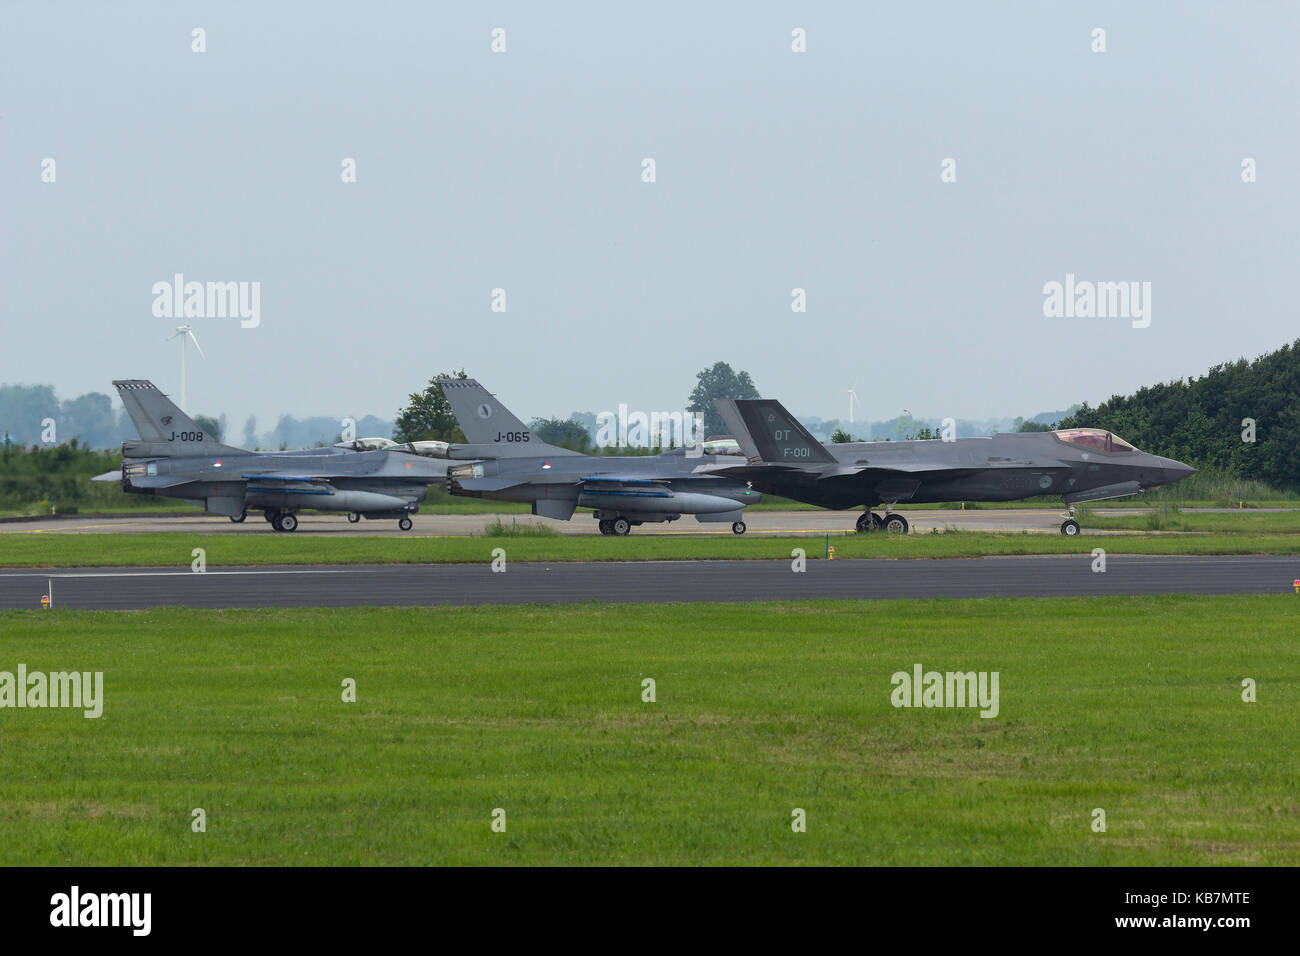 F-35 and four F-16's of the RNLAF preparing for a mission - Stock Image